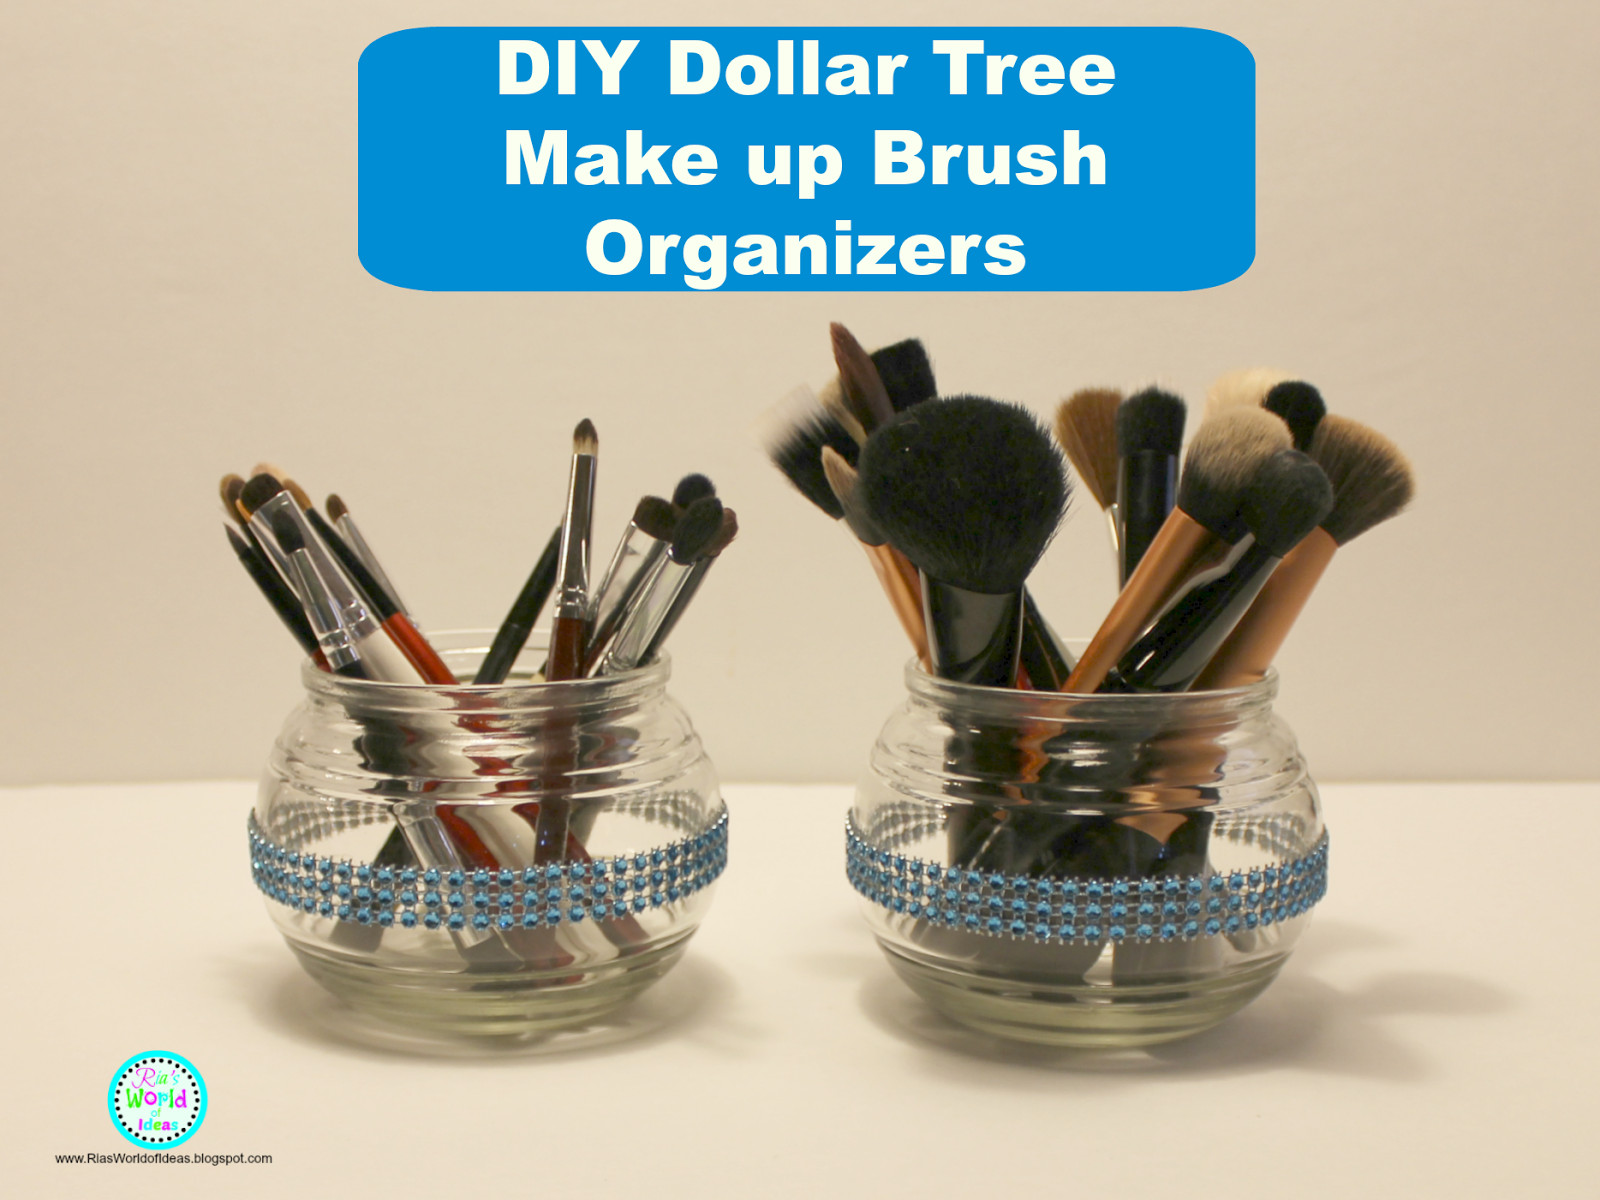 Best ideas about DIY Dollar Tree . Save or Pin Ria s World of Ideas DIY Dollar Tree Make up Brush Organizers Now.